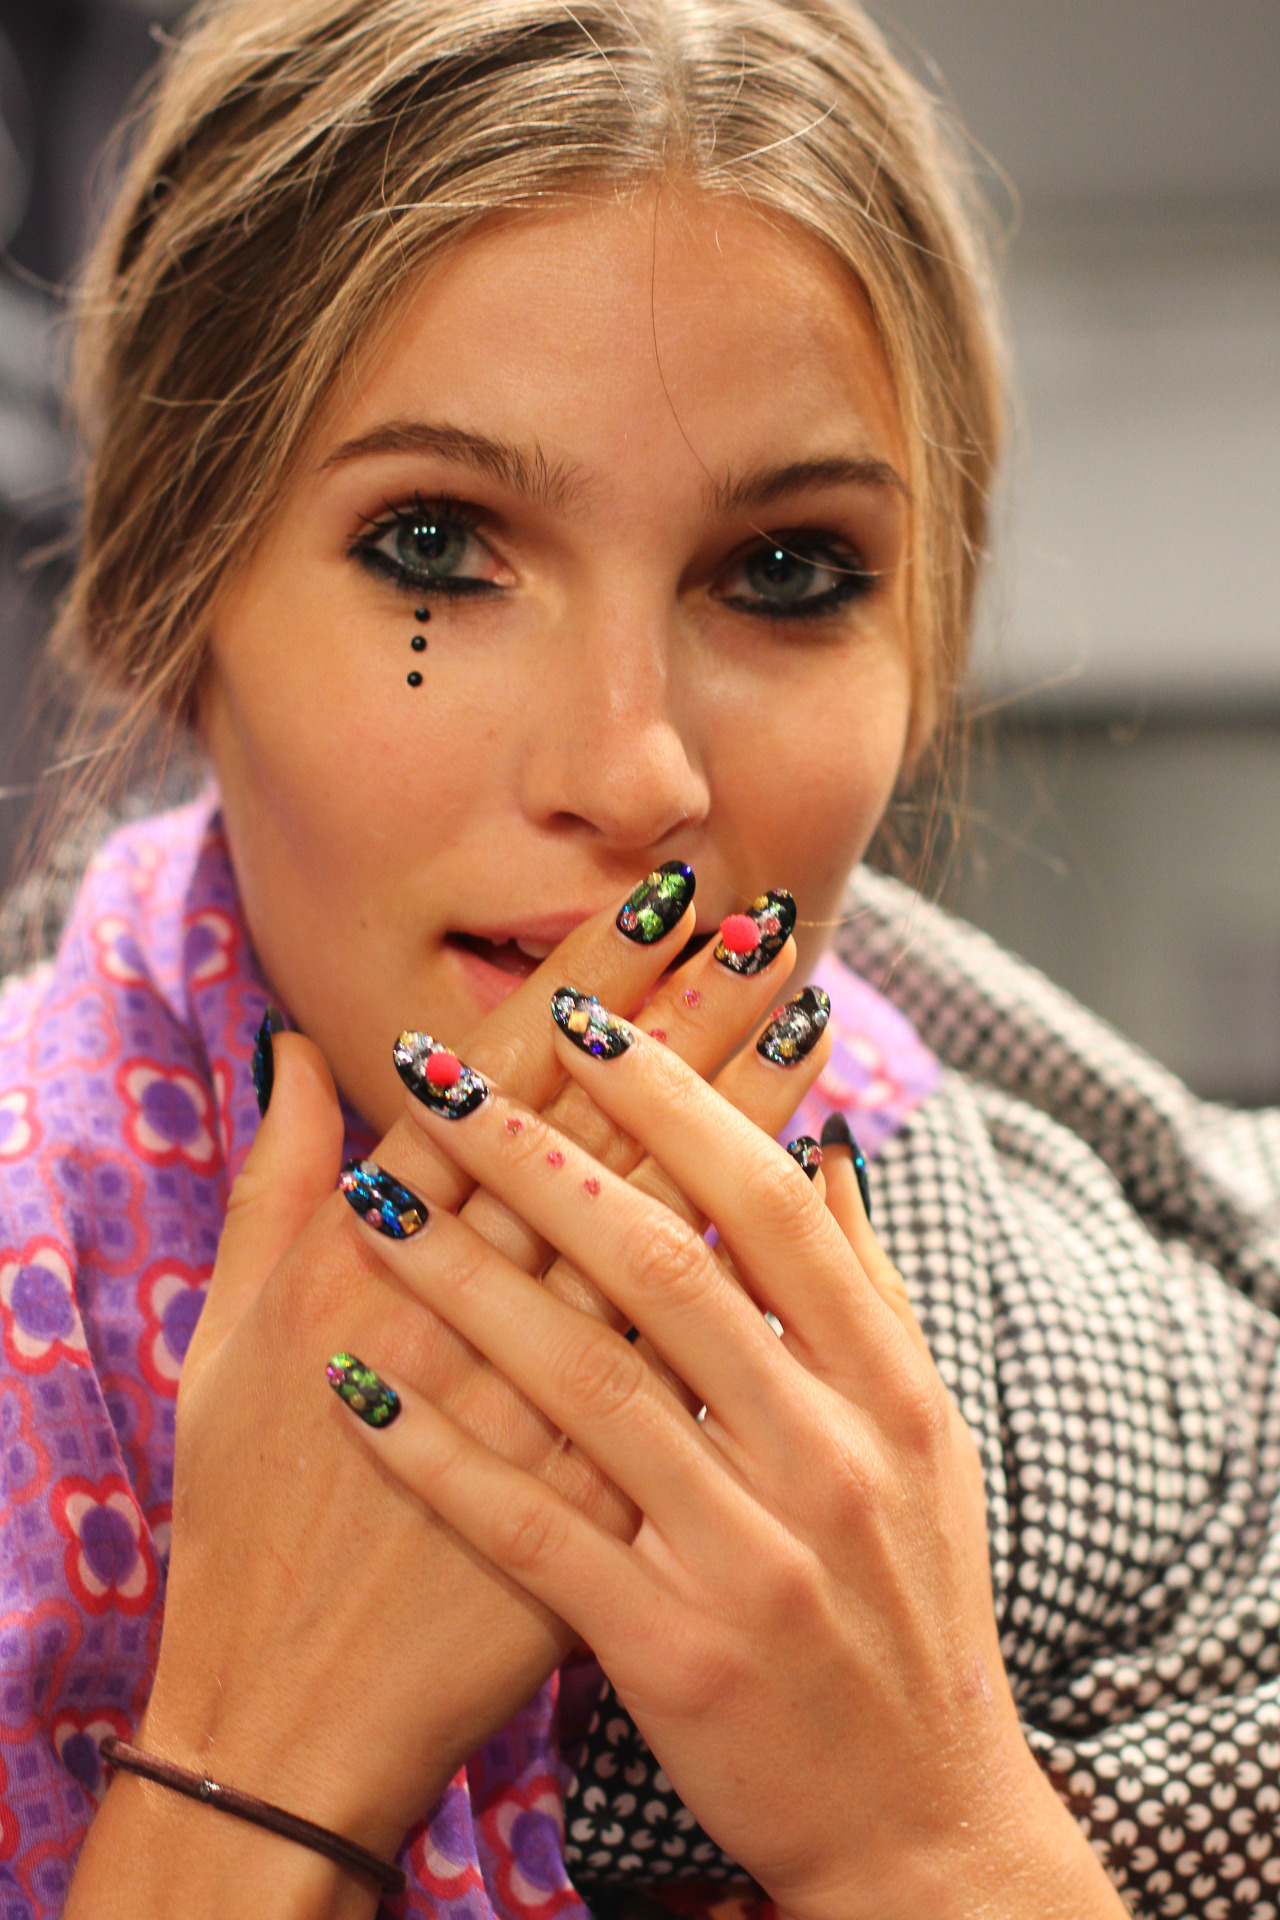 Backstage with  Libertine  #NYFW   If someone was texting at dinner with those nails, I wouldn't even be mad about it.   Hair by  Kerastase , makeup and nails by  butter LONDON        Images c/o Rachel Scroggins ( The Greyest Ghost ) for Cult of Pretty     - Kristin